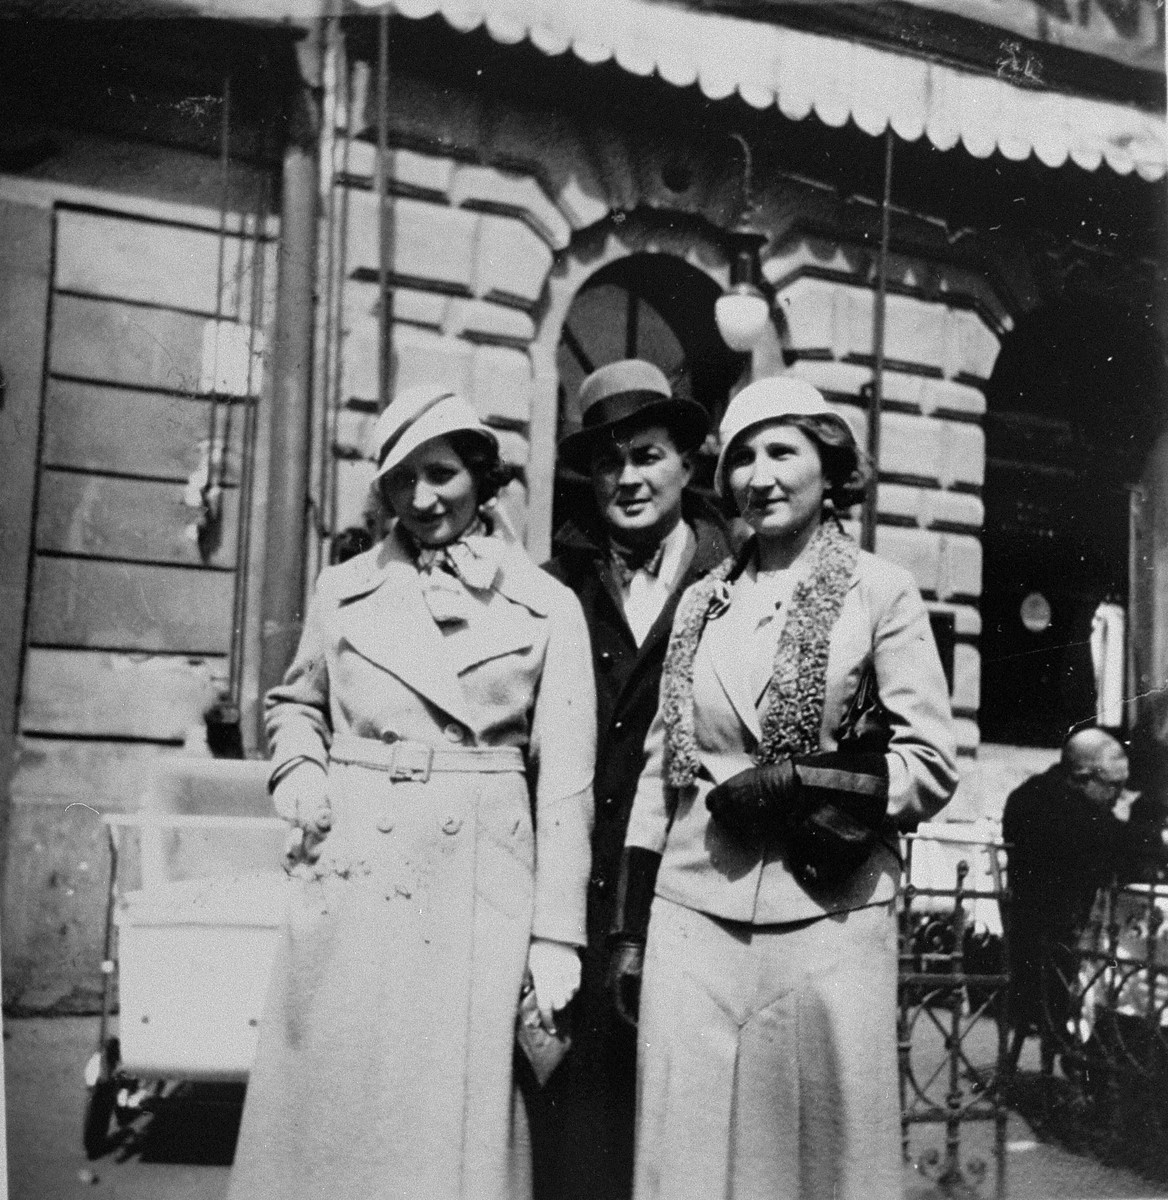 Dr. Joseph Jaksy poses on a street in Bratislava with Mrs. Suran and her daughter Valeria.    The Surans were among the 25 Jews rescued by Dr. Joseph Jaksy during WWII.  Jaksy engineered the fictitious purchase of the Suran's home in Bratislava; he provided false papers that allowed the Suran children to escape to South America; he registered the elder Surans as his own Slovak domestics; and, after a Gestapo search of the house, he provided Mrs. Suran with false papers and drove her to safety.